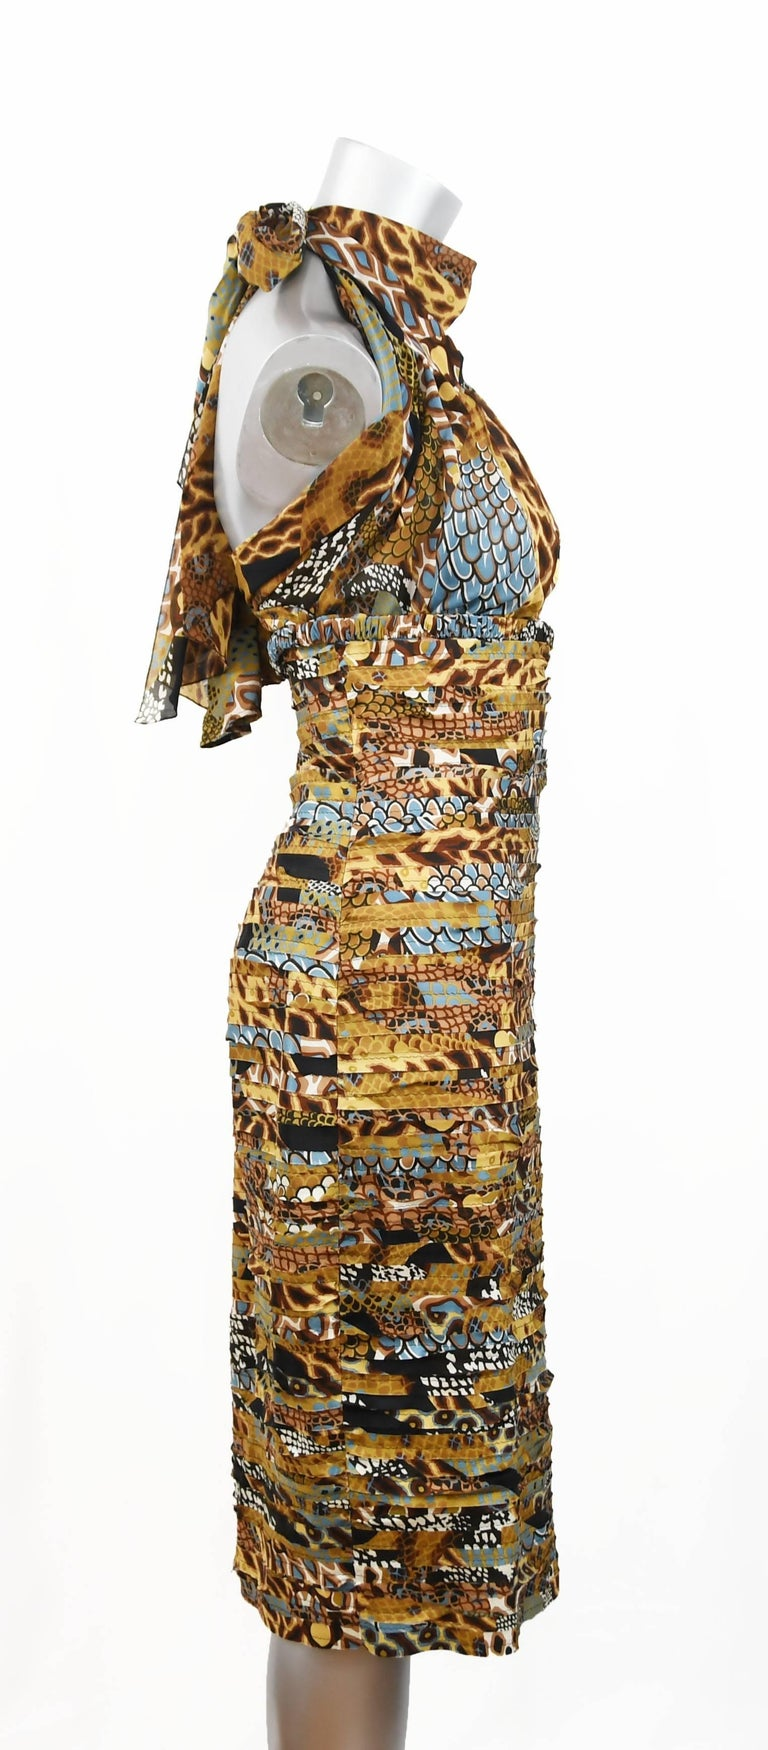 Women's Versace Runway Iconic Plunged Neckline Dress in Browns and Turquoise, Size 4 For Sale